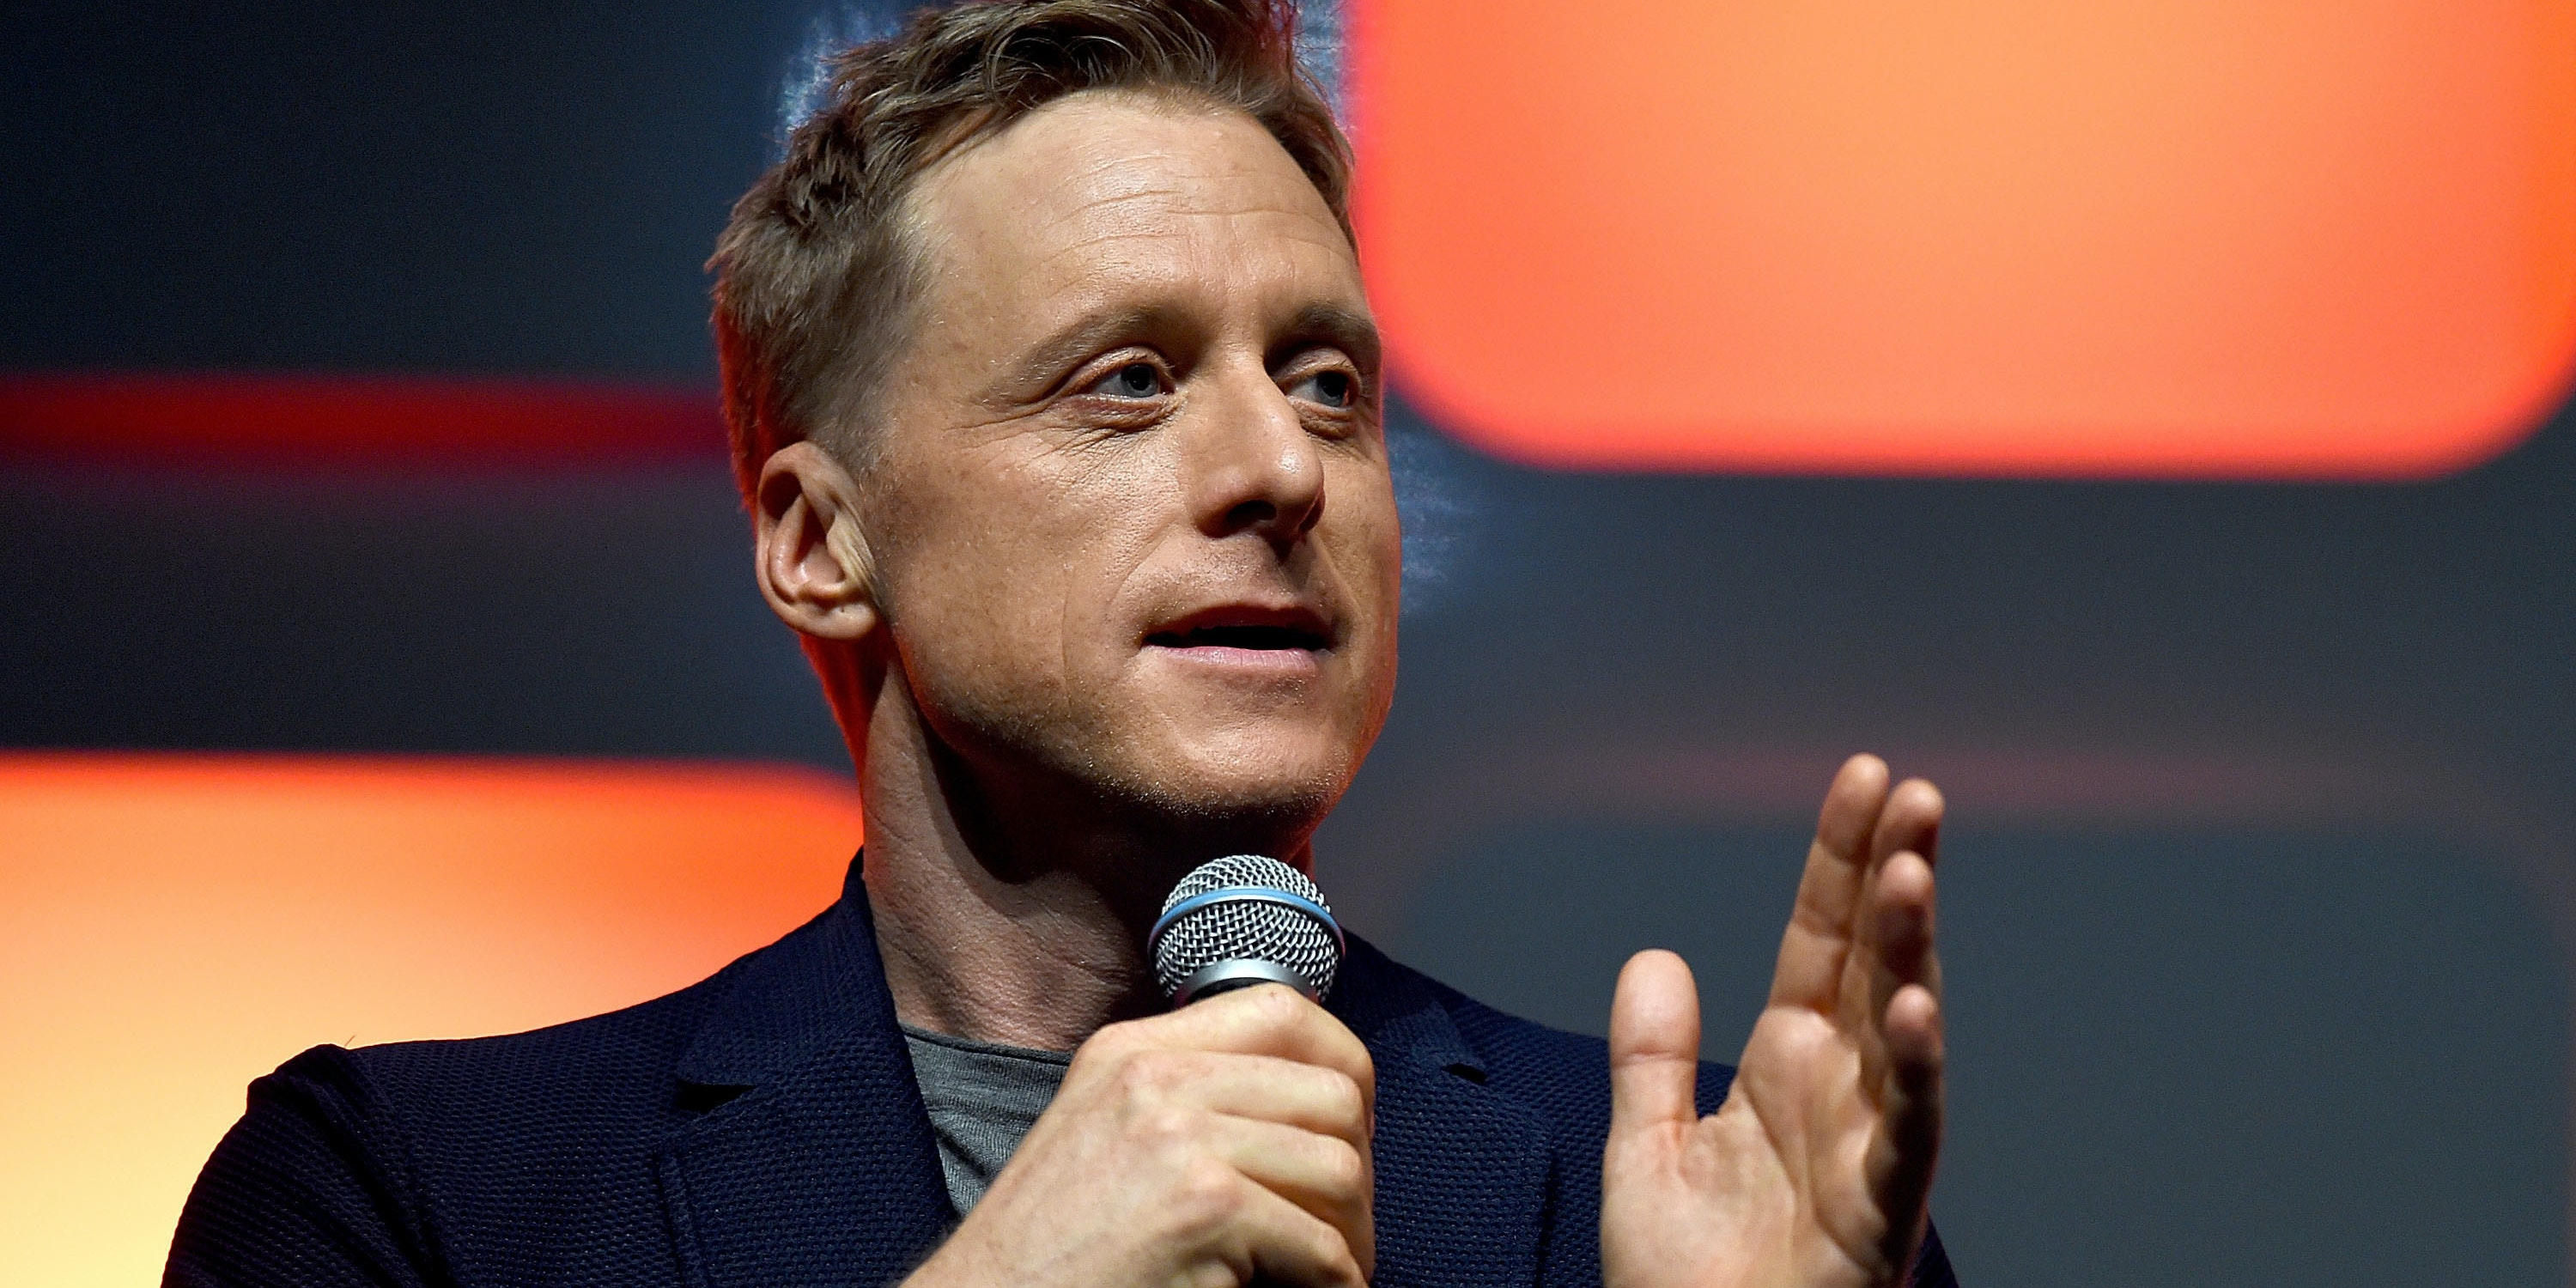 LONDON, ENGLAND - JULY 15:  Alan Tudyk on stage during the Rogue One Panel at the Star Wars Celebration 2016 at ExCel on July 15, 2016 in London, England.  (Photo by Ben A. Pruchnie/Getty Images for Walt Disney Studios)